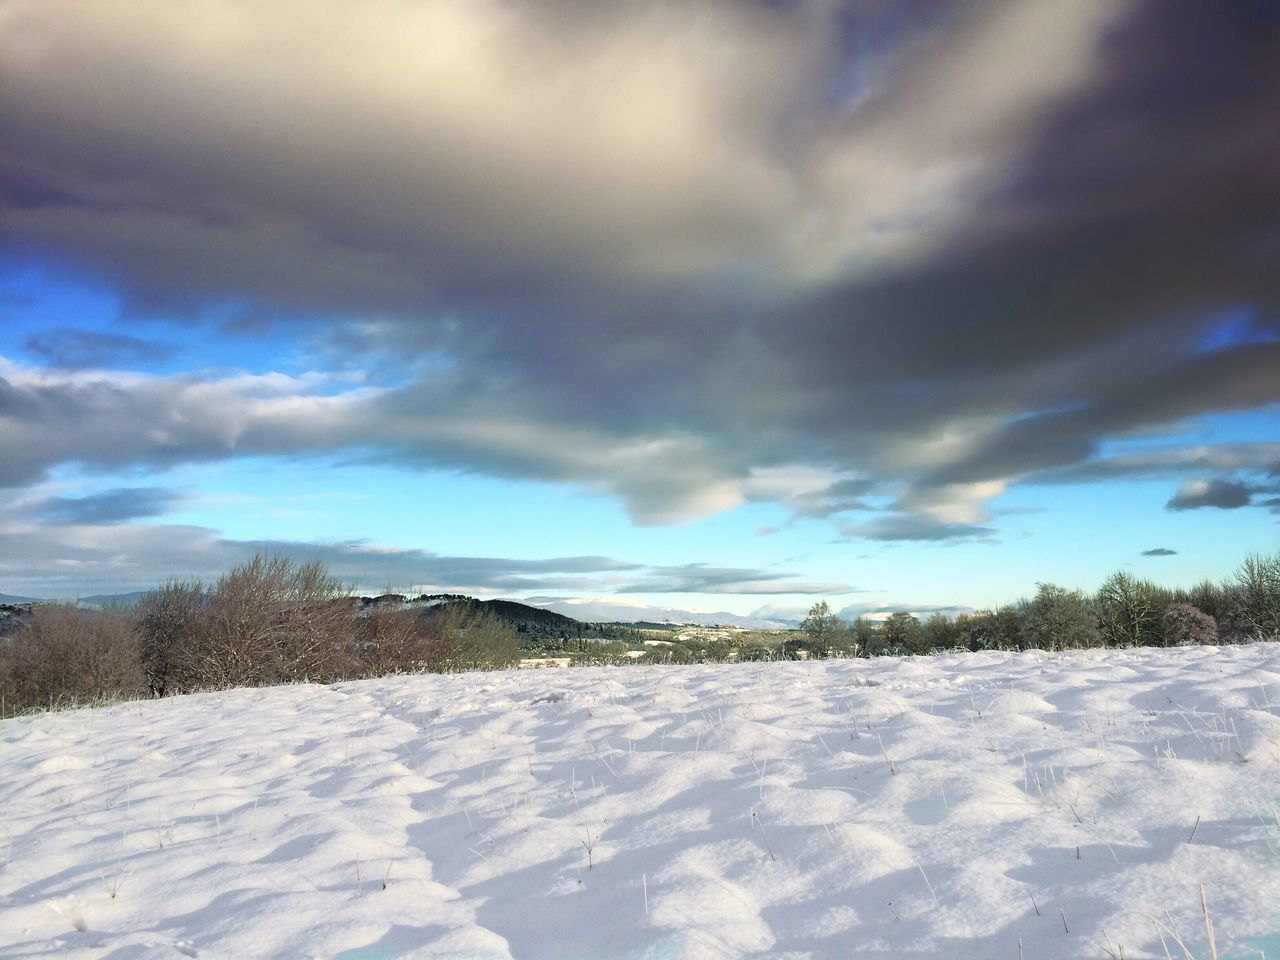 Winter Landscape Insh Marshes Scottish Highlands Wintertime Snow Clouds And Sky EyeEm Best Shots Landscape_Collection Outdoor Photography EyeEm Best Shots - Landscape EyeEmBestPics Mobilephotography IPhoneography